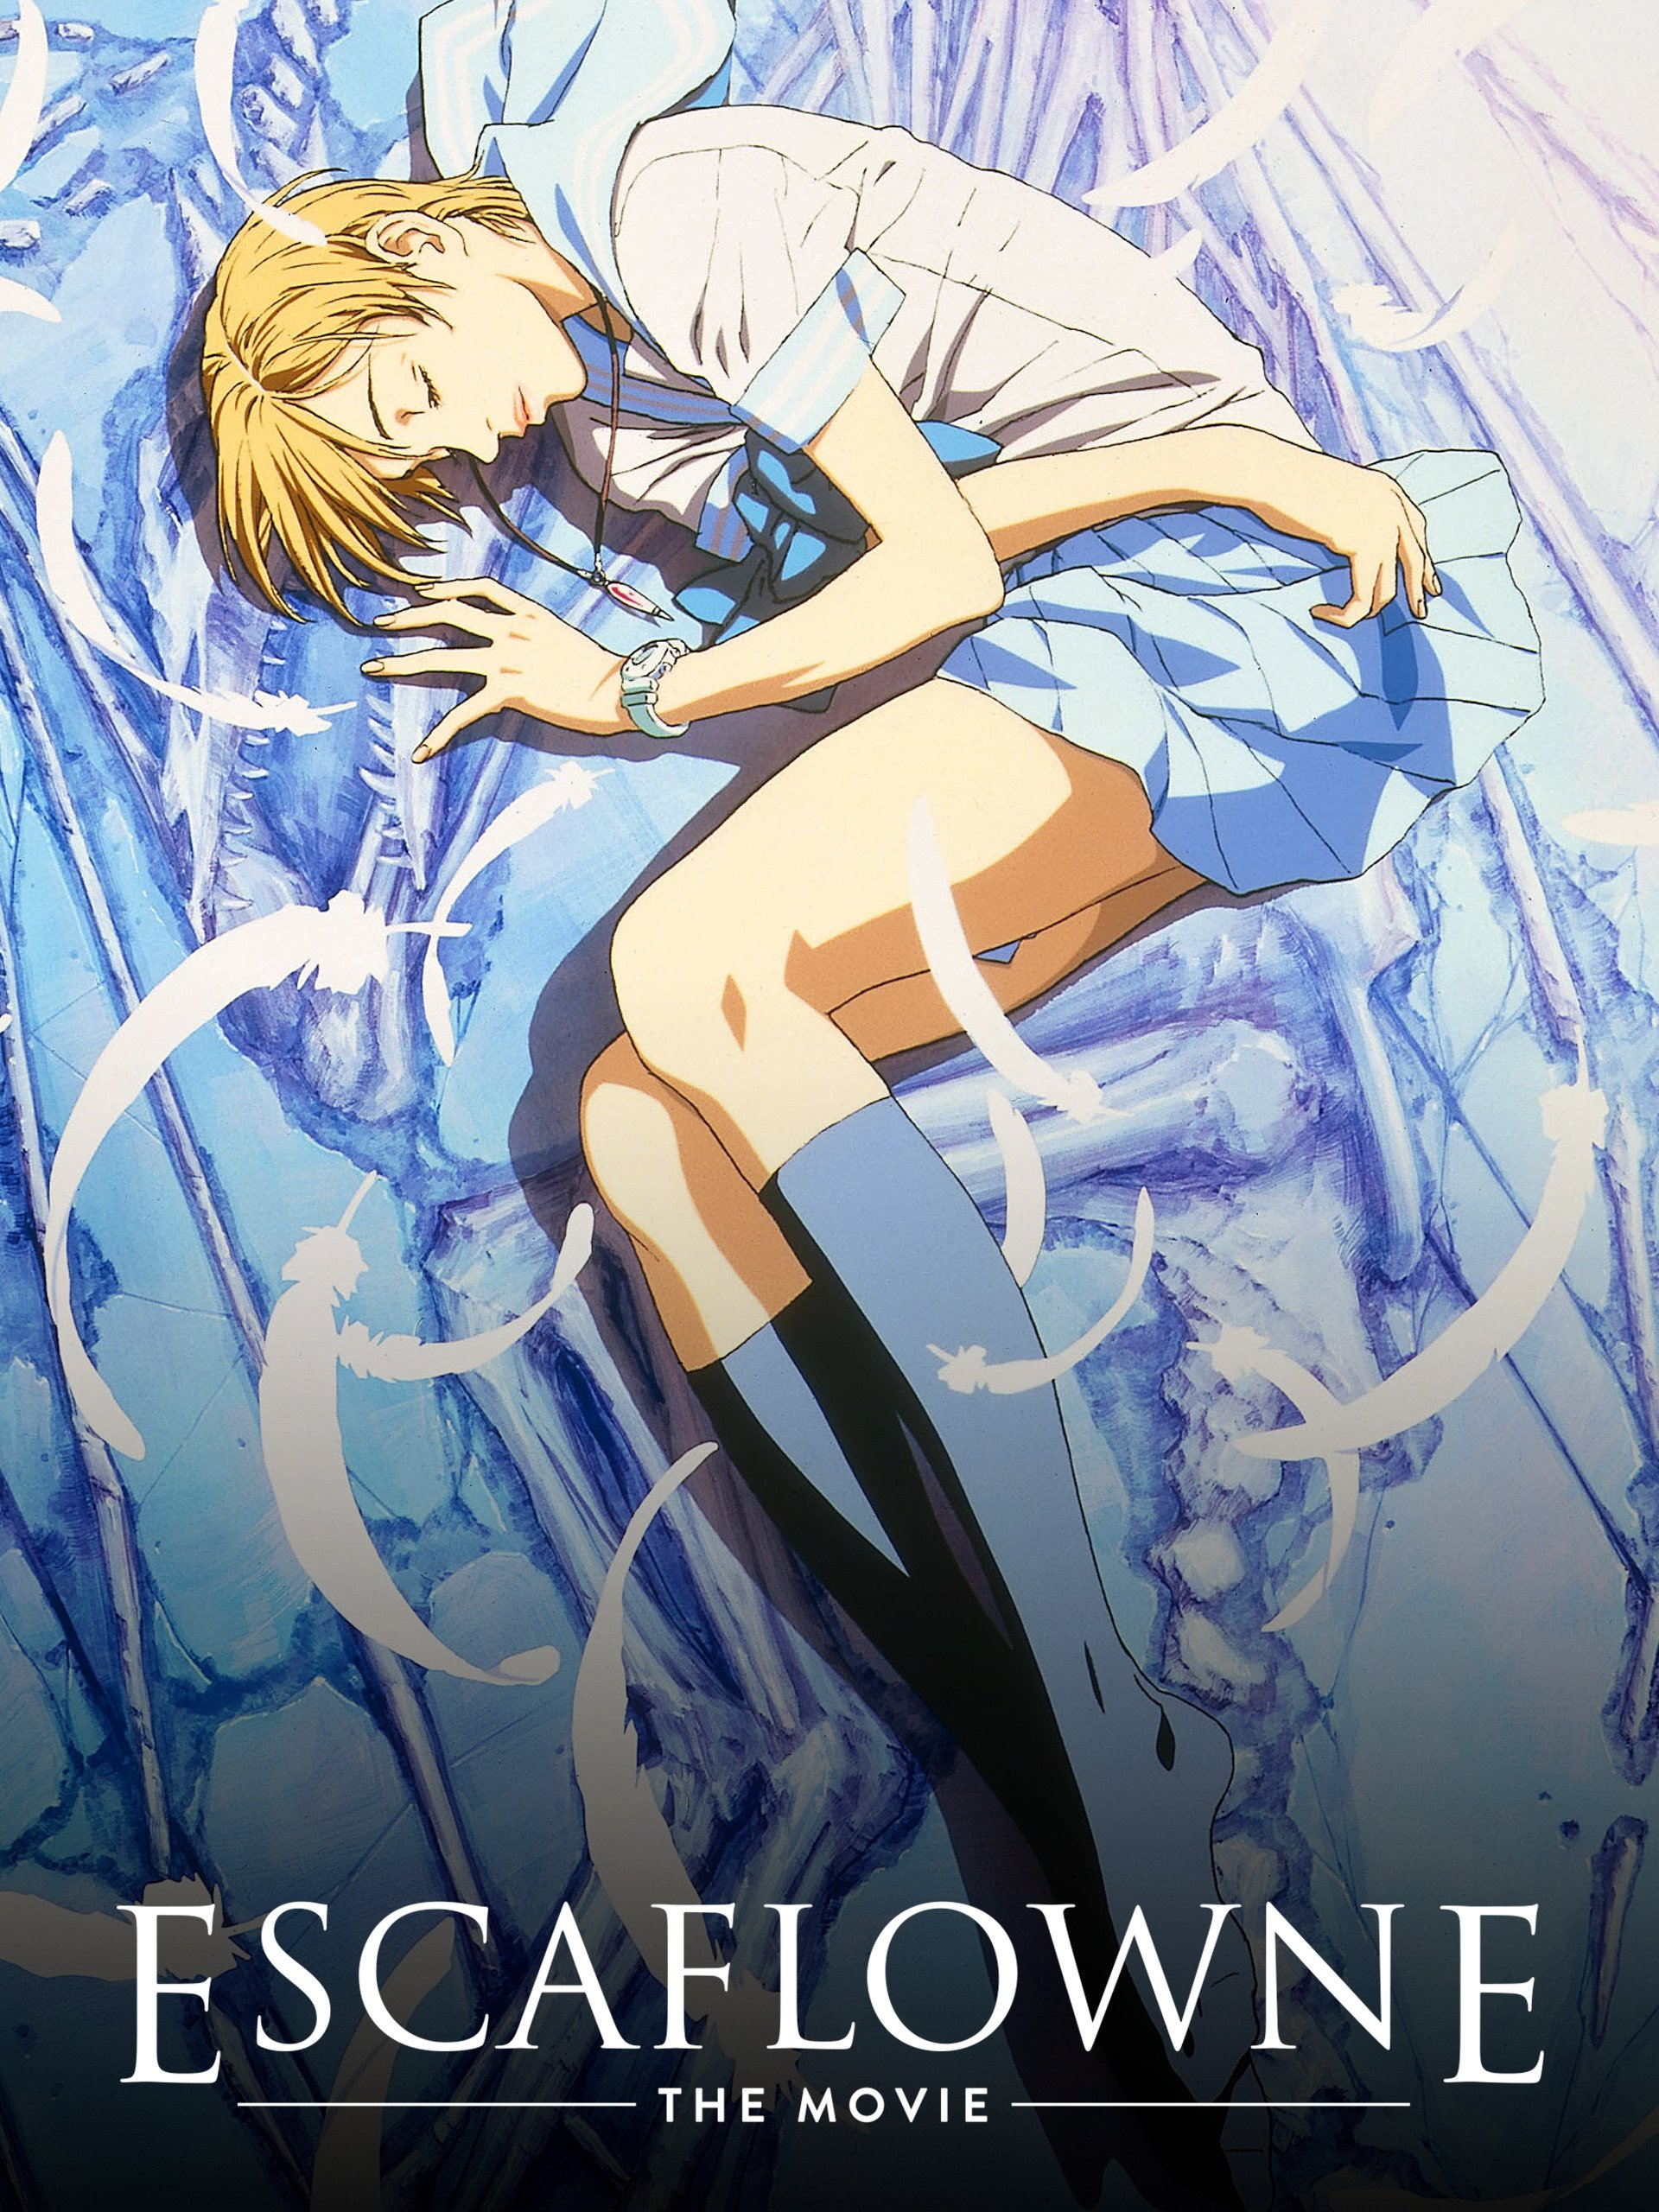 Escaflowne: The Movie by